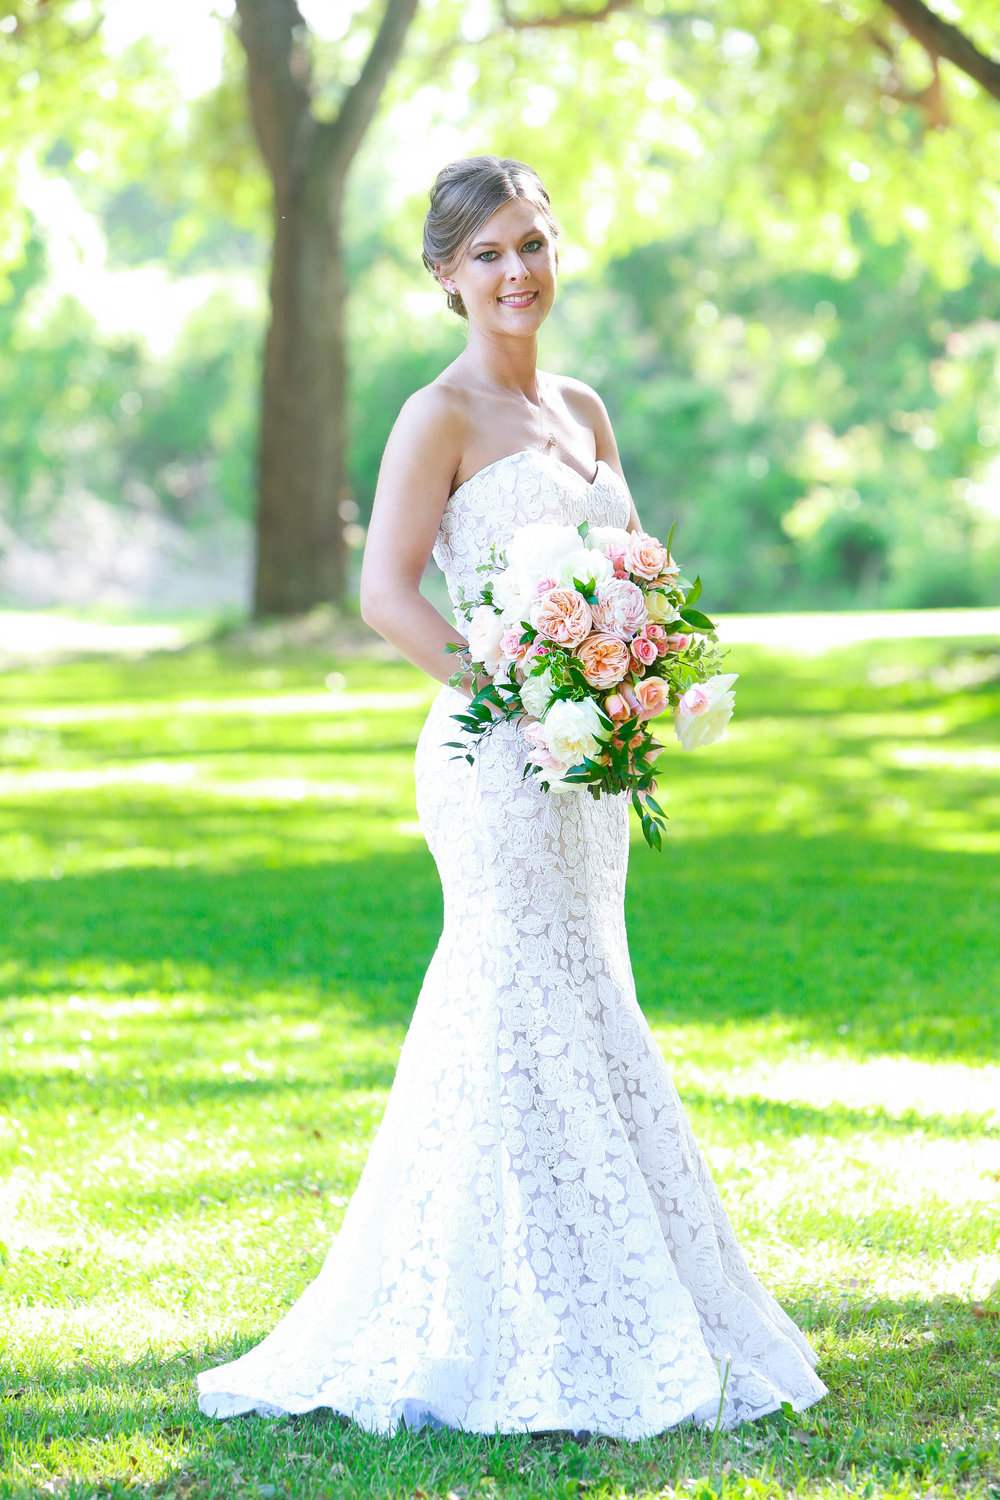 Classic bridal portrait with vibrant green colors in the background